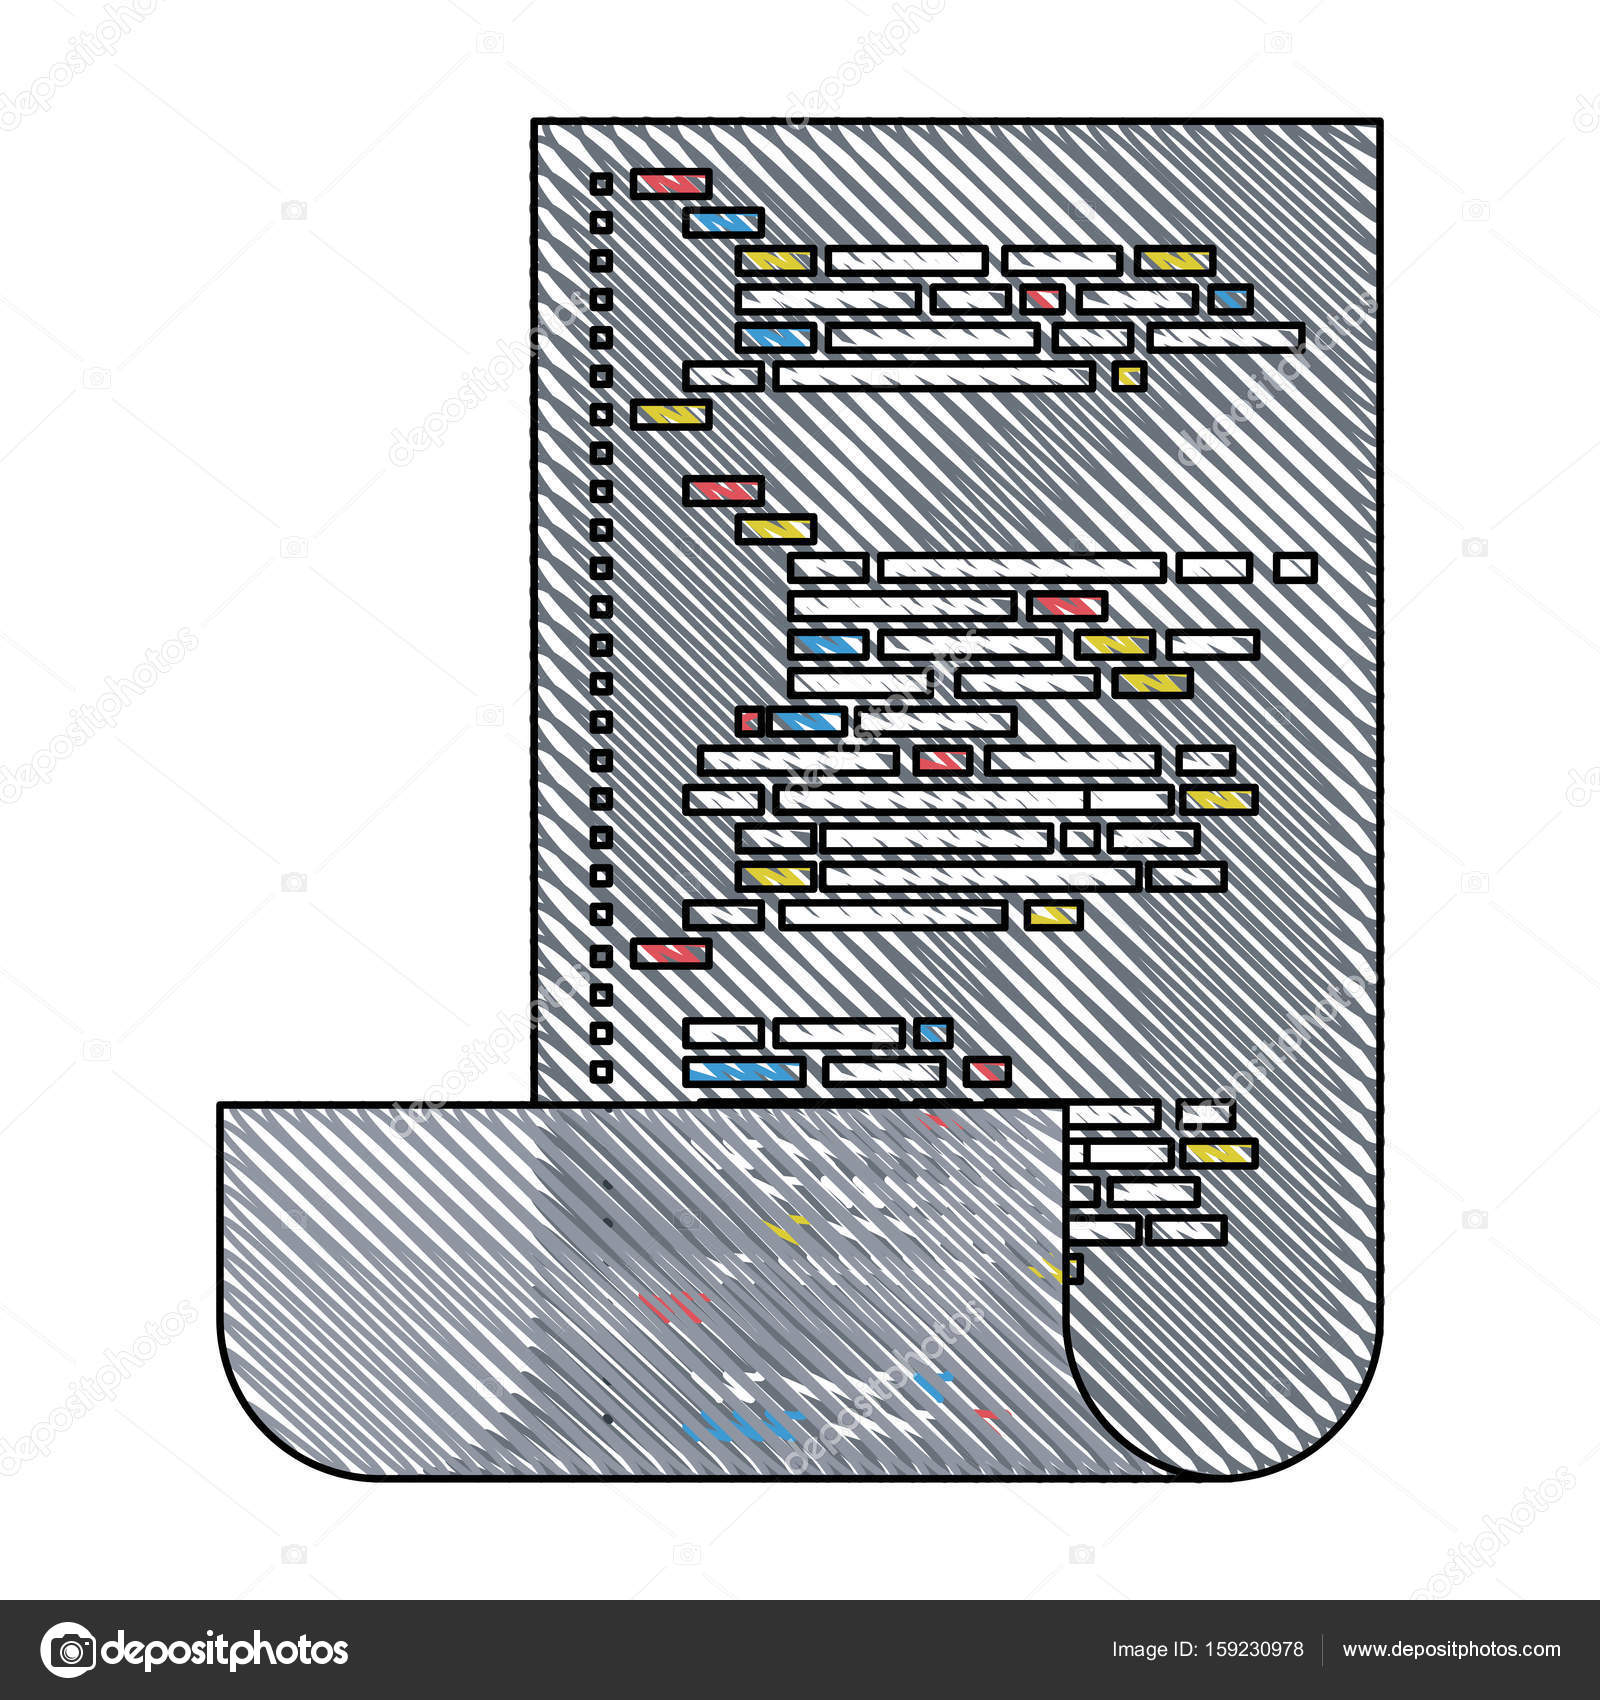 Colored Pencil Silhouette Gray Of Sheet With Printed Source Code